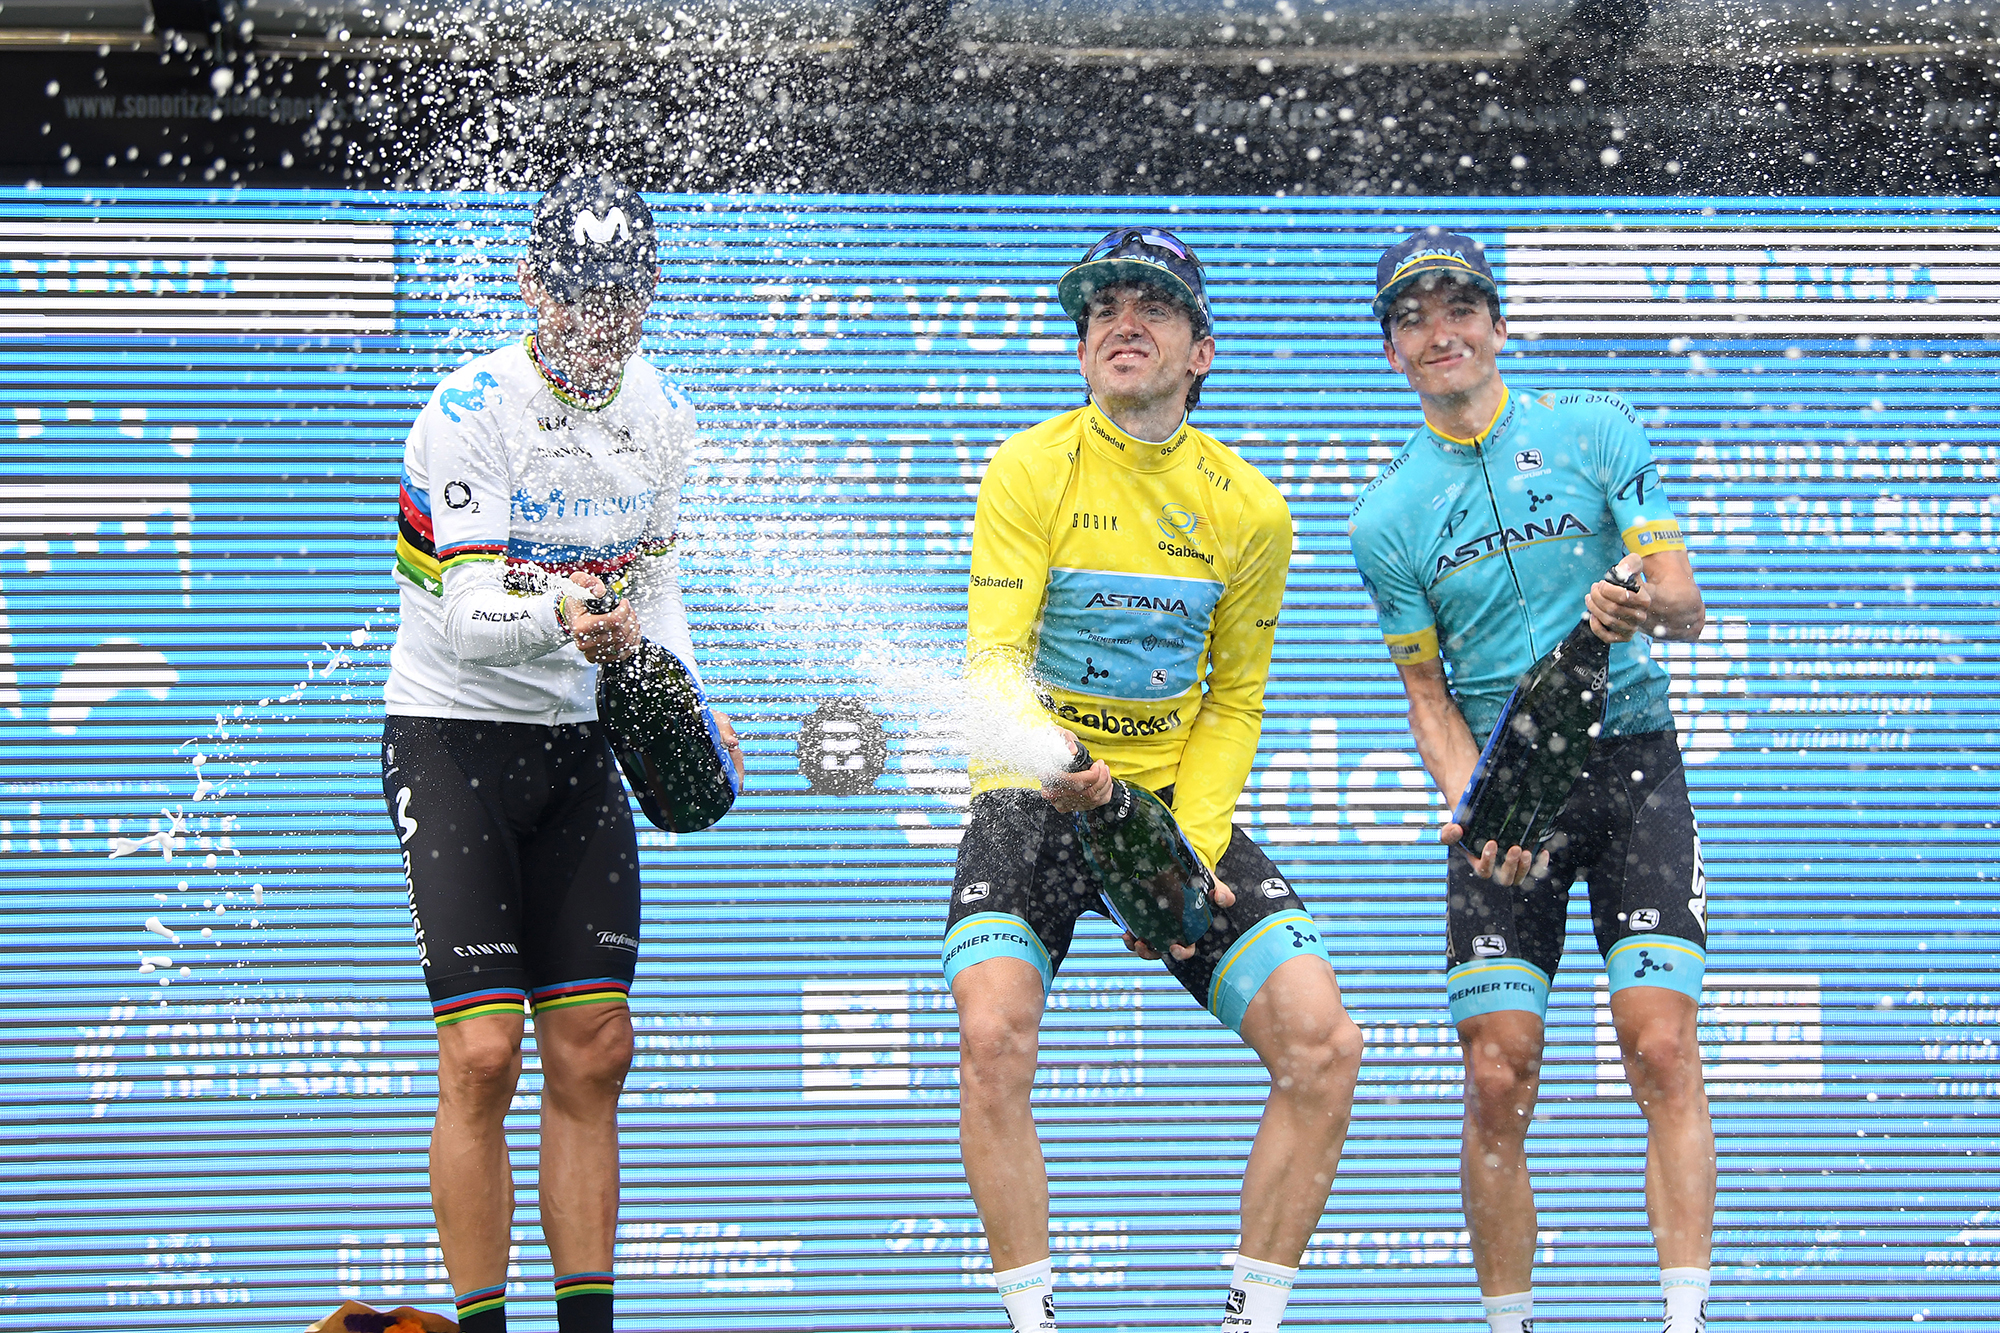 VALENCIA, SPAIN - FEBRUARY 10: Podium / Alejandro Valverde of Spain and Movistar Team / Ion Izaguirre of Spain and Astana Pro Team Yellow Leader Jersey / Pello Bilbao of Spain and Astana Pro Team / Celebration / Champagne / during the 70th Volta a la Comunitat Valenciana 2019, Stage 5 a 88,5km stage from Paterna to Valencia VCV / @VueltaCV / on February 10, 2019 in Valencia, Spain. (Photo by David Ramos/Getty Images)